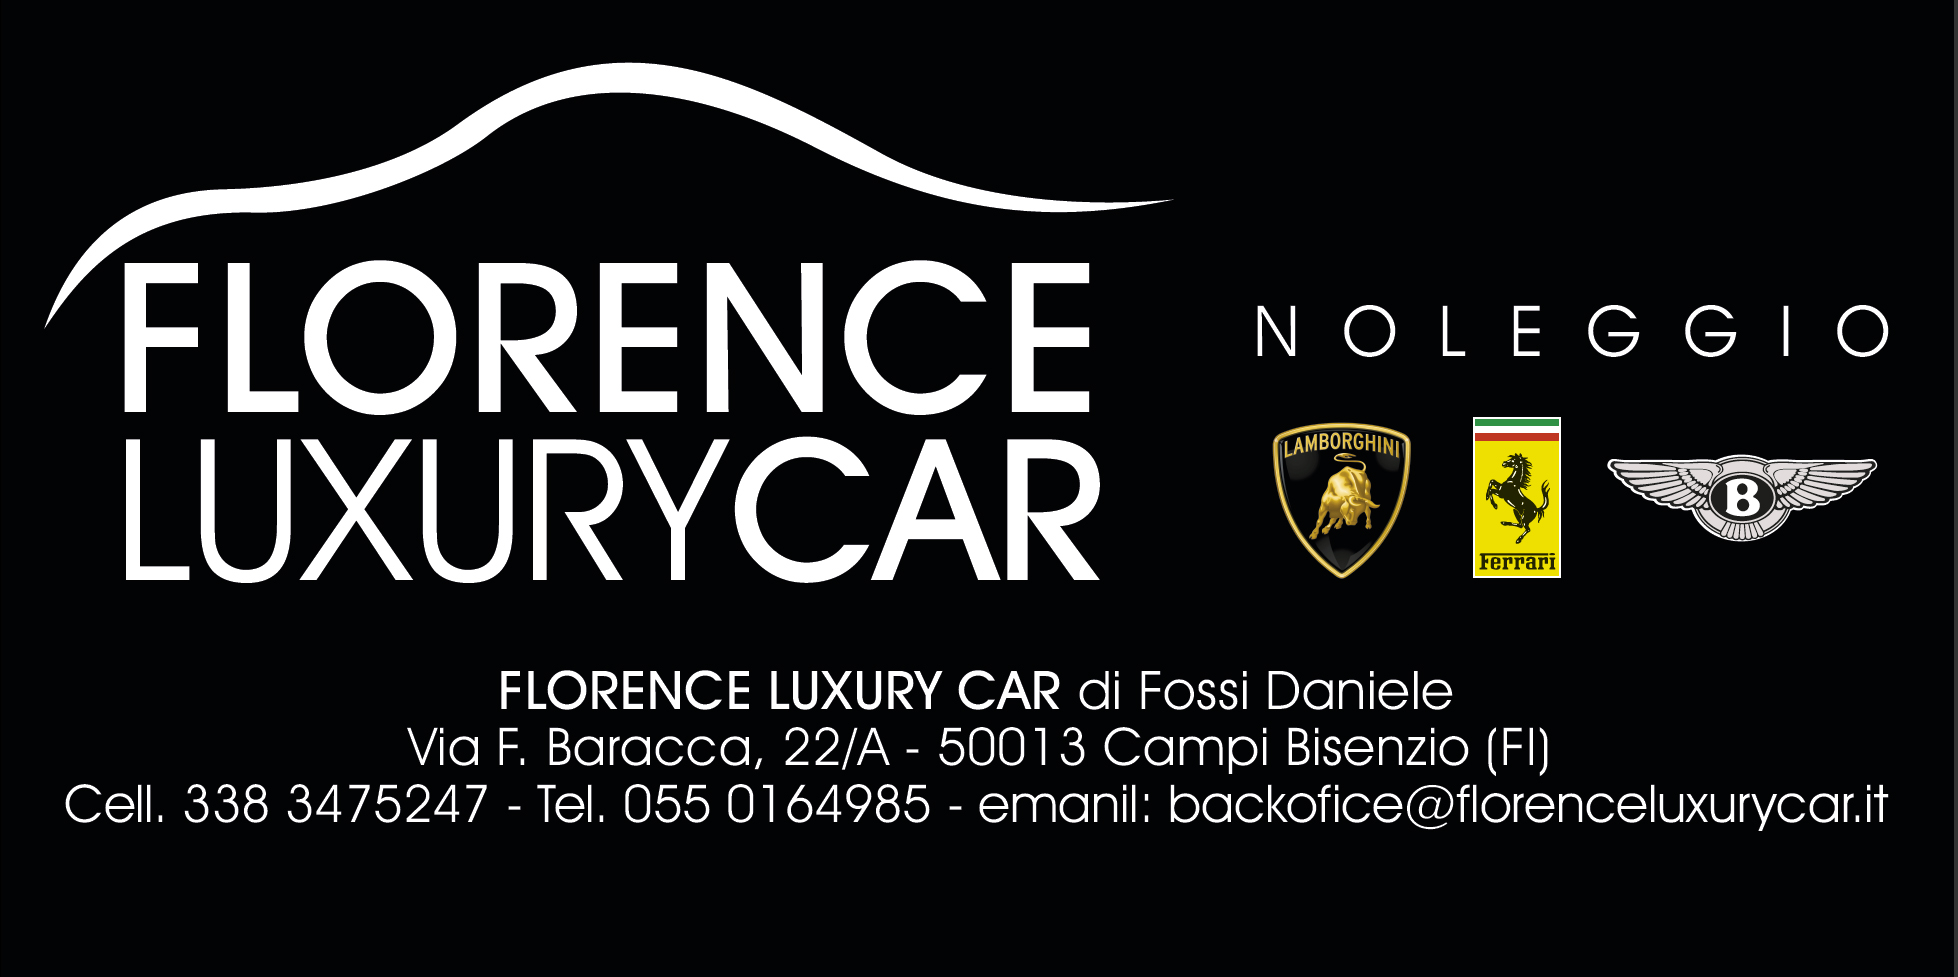 Florence Luxury Car